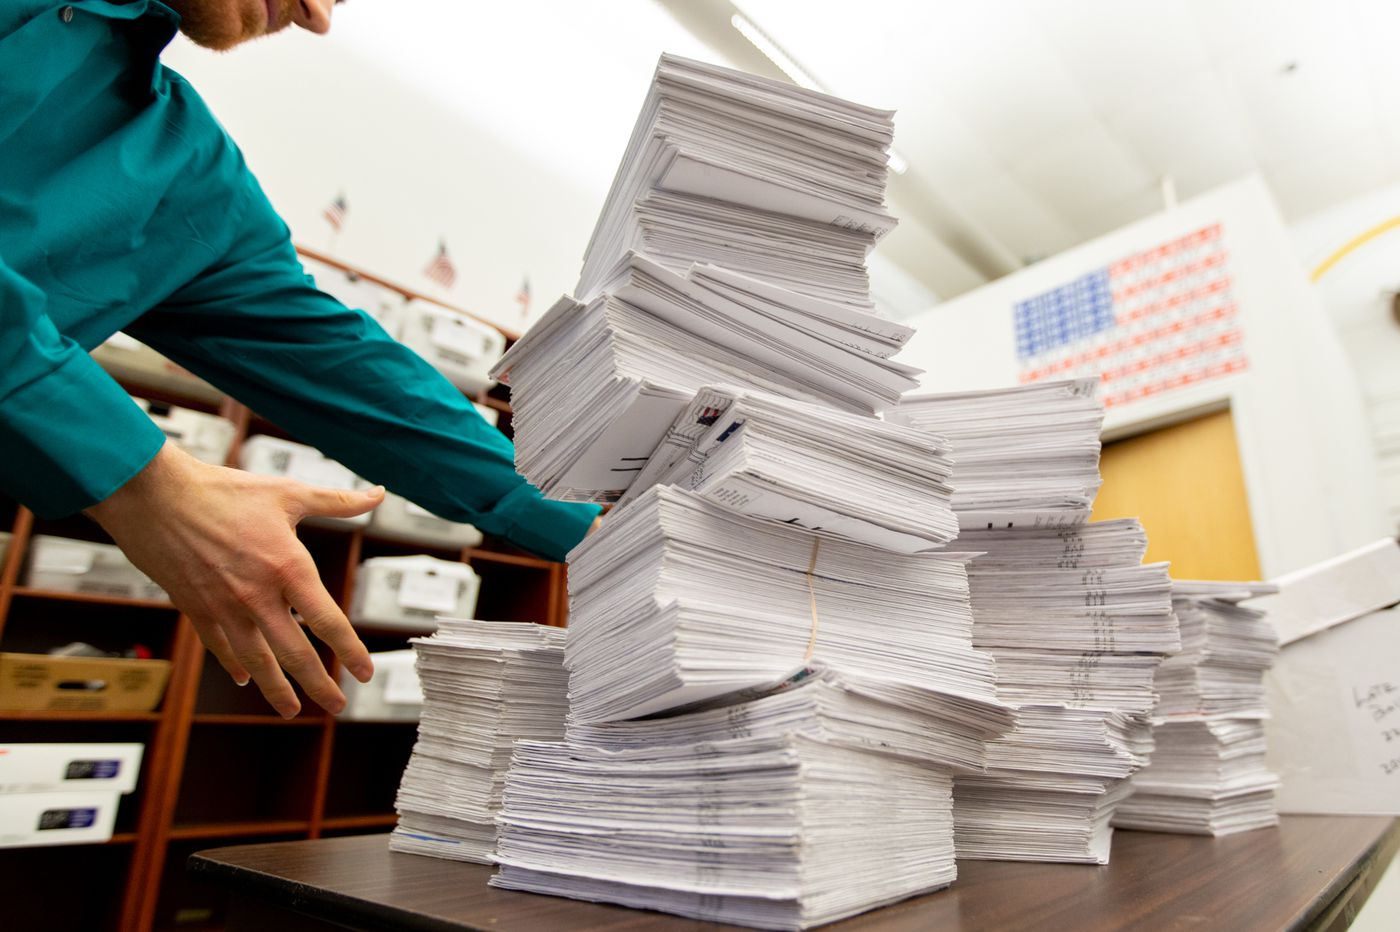 Pa. will let voters request absentee ballots online. That could help more votes get counted.